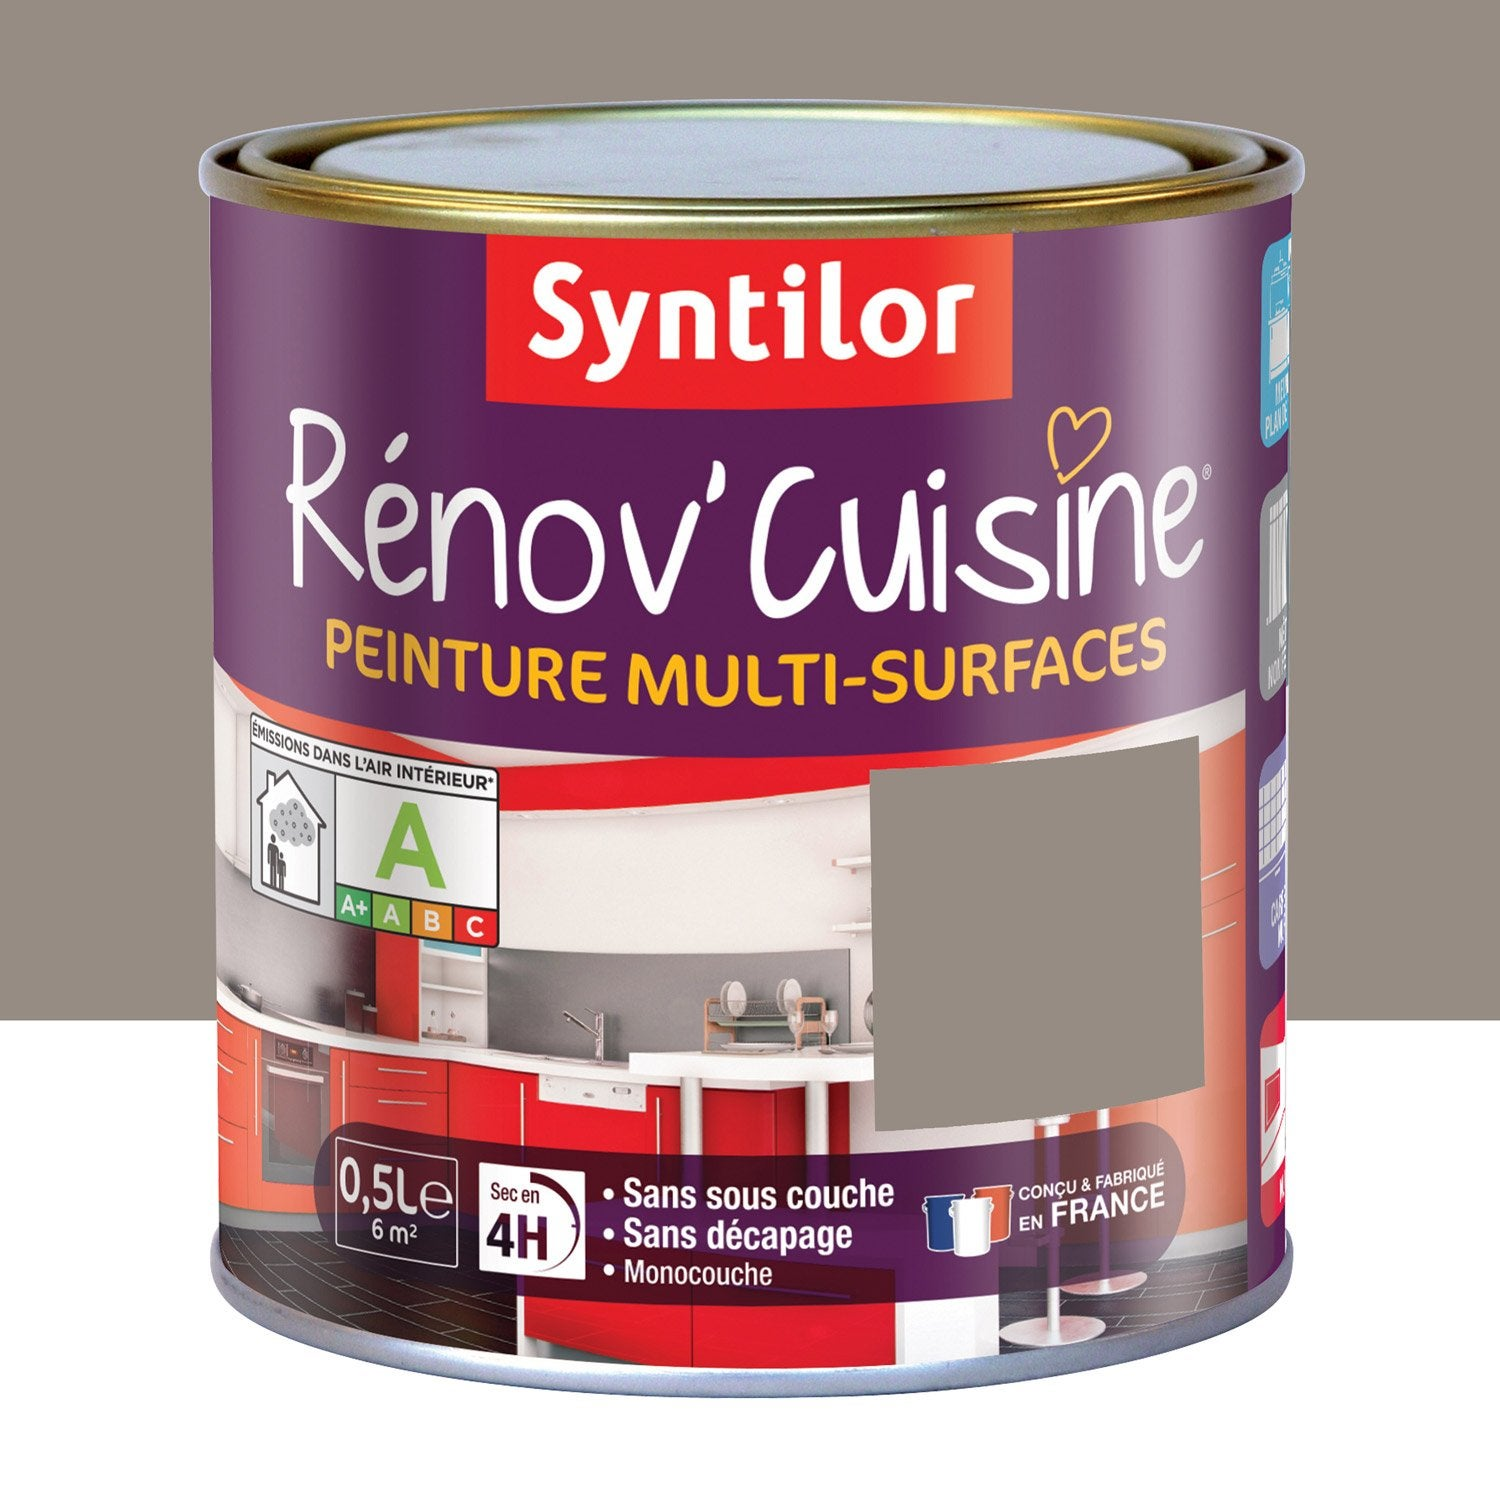 Peinture de r novation r nov 39 cuisine syntilor macaron 0 for Peinture de renovation